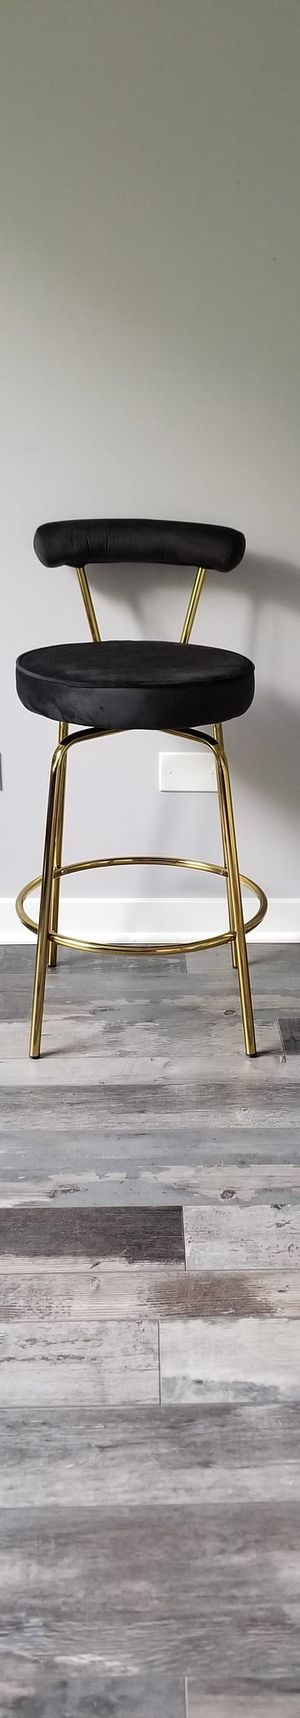 Glam Counter Stool in Gold Metal and Black Velvet for Sale in Elgin, IL